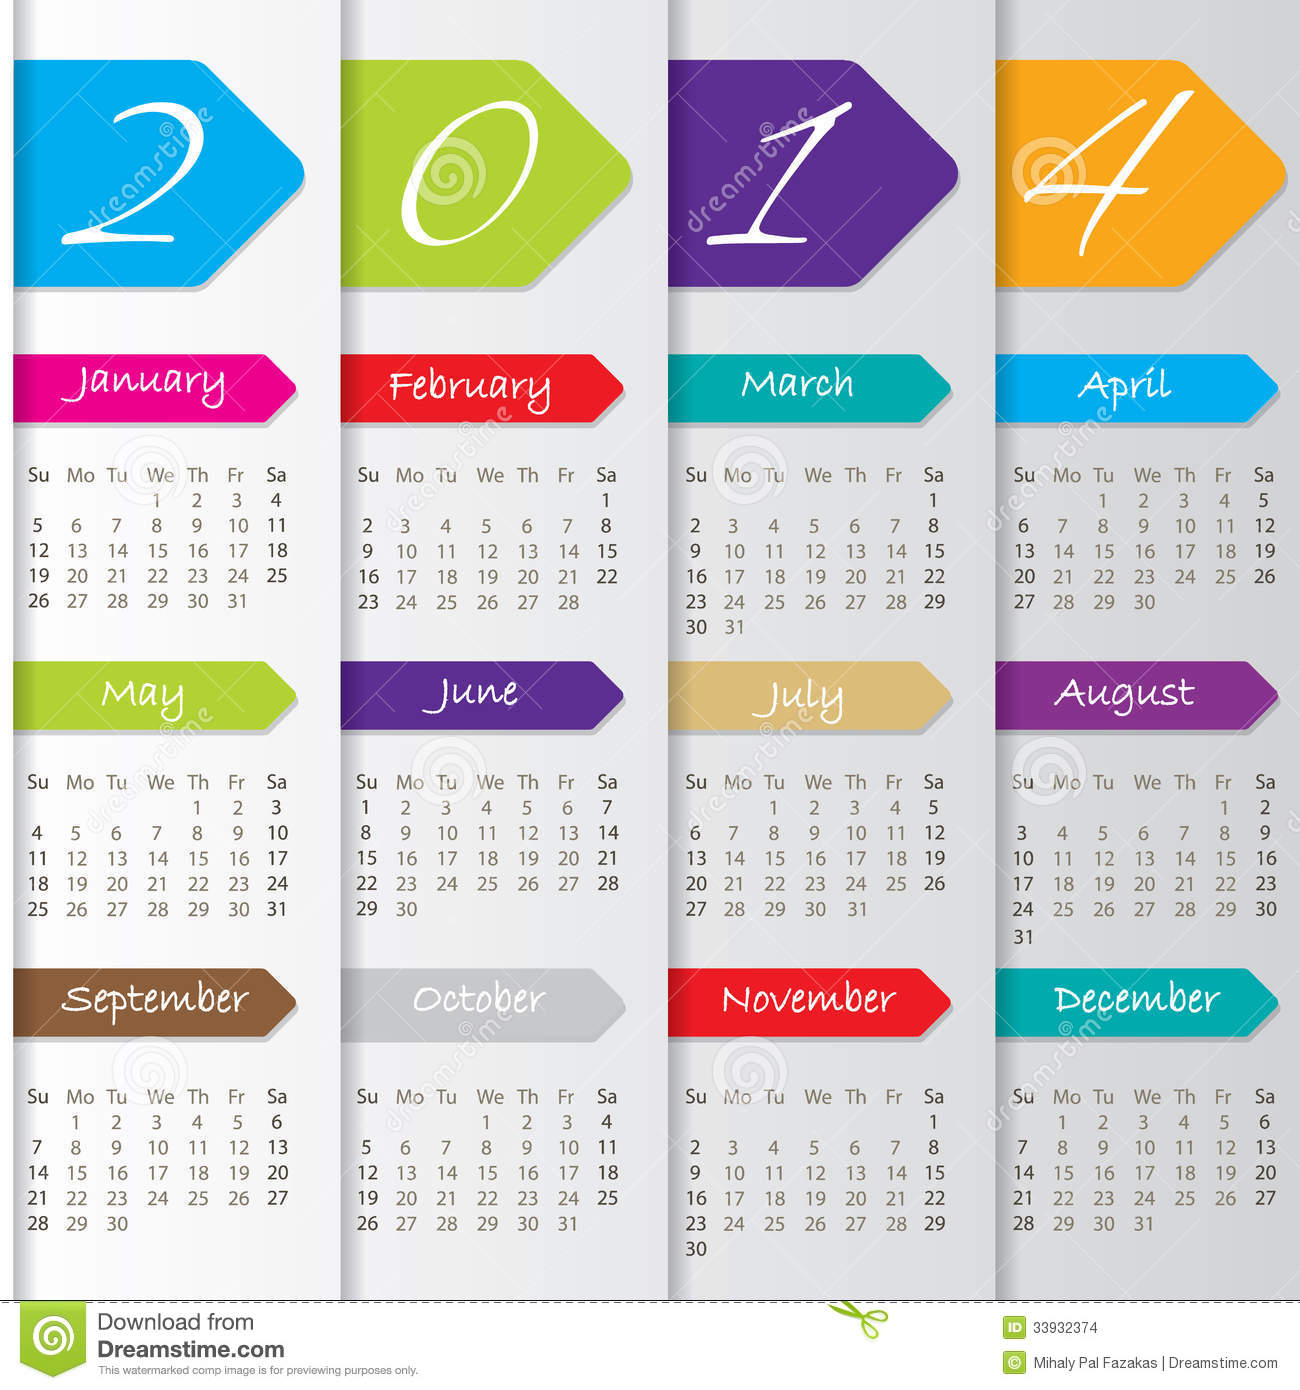 New Year Calendar Design : Arrow calendar design for stock vector illustration